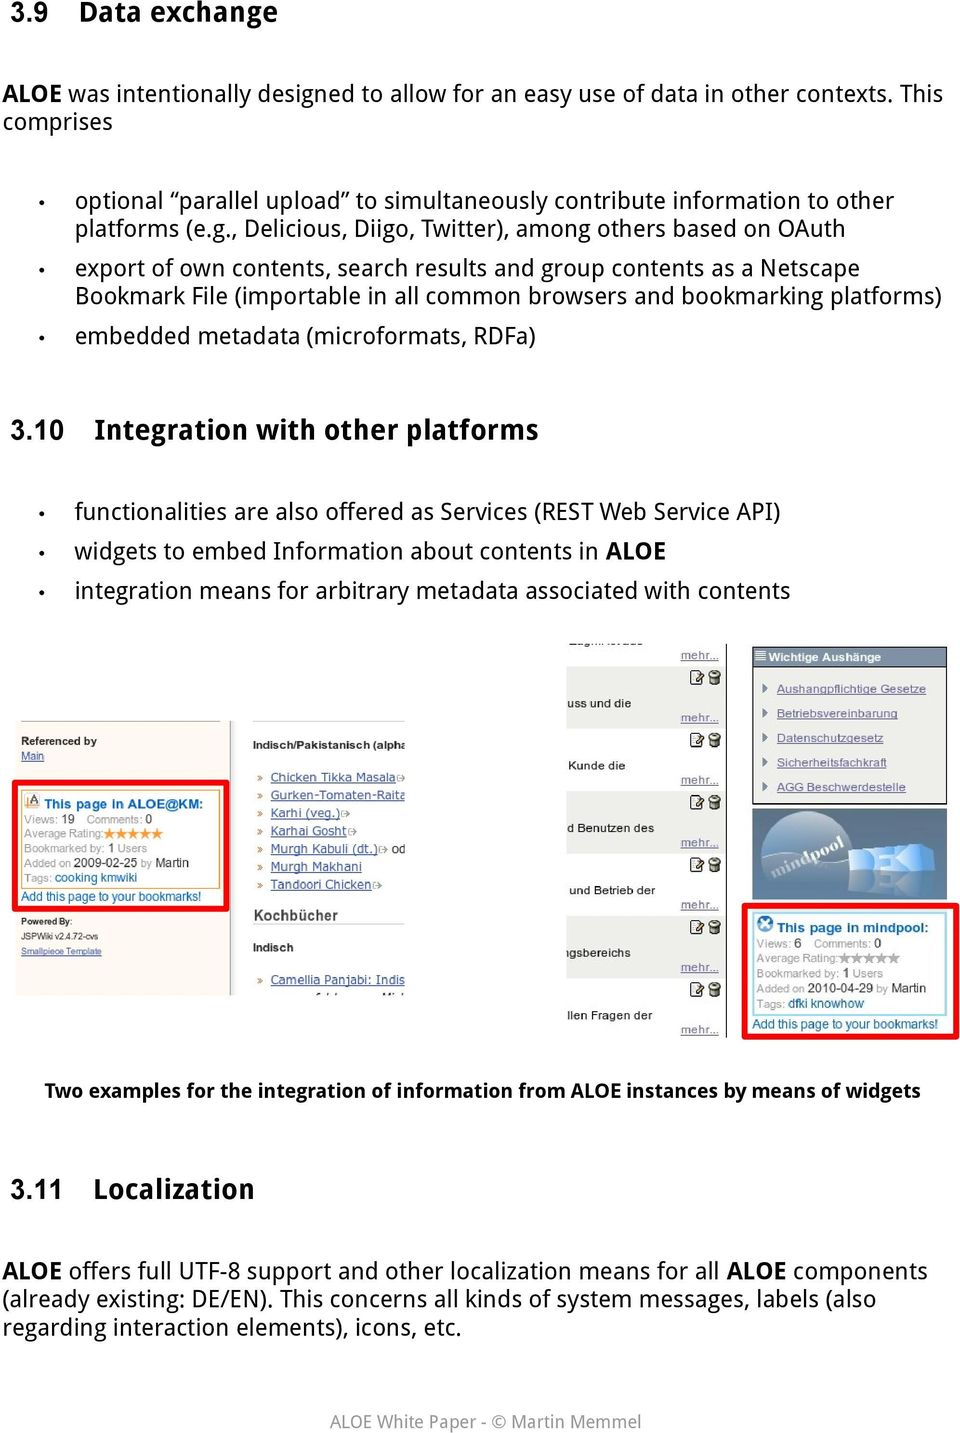 , Delicious, Diigo, Twitter), among others based on OAuth export of own contents, search results and group contents as a Netscape Bookmark File (importable in all common browsers and bookmarking